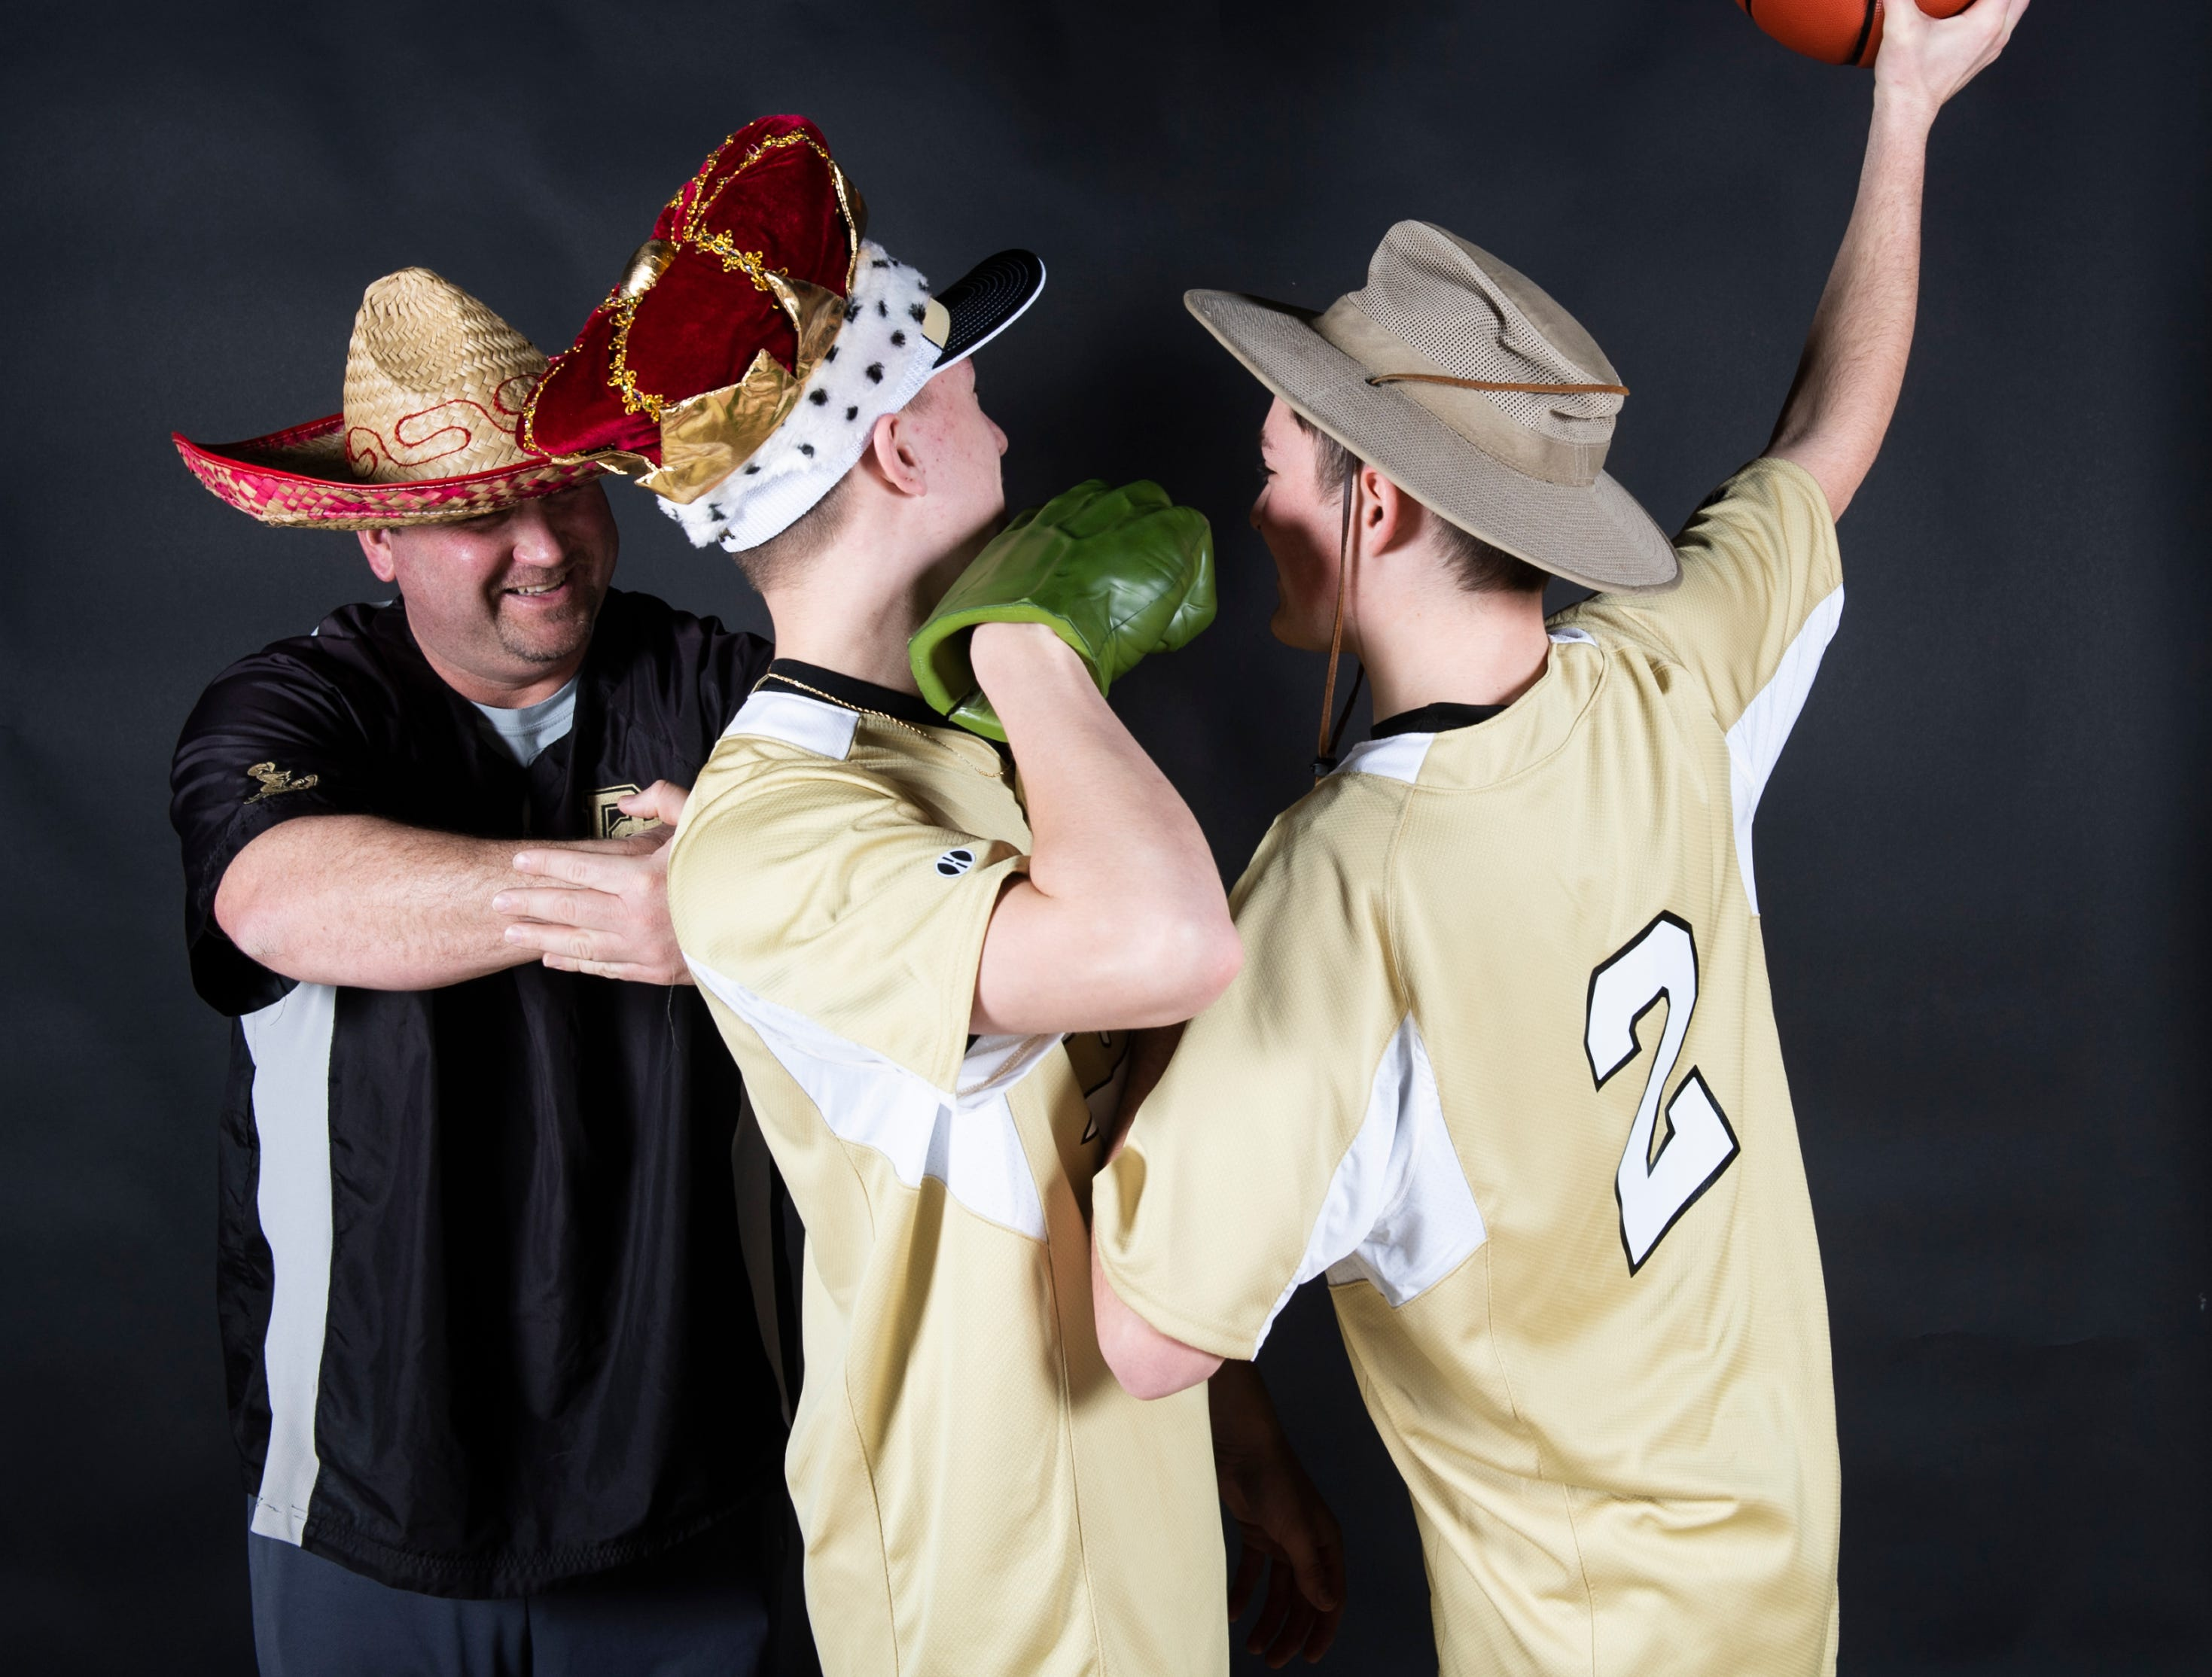 Delone Catholic baseball's Josh Sherdel, right, dunks on teammate Shane Kecken as  coach Dave Neumayer serves as the hoop in the GameTimePA photo booth during spring sports media day in York Sunday, March 10, 2019.